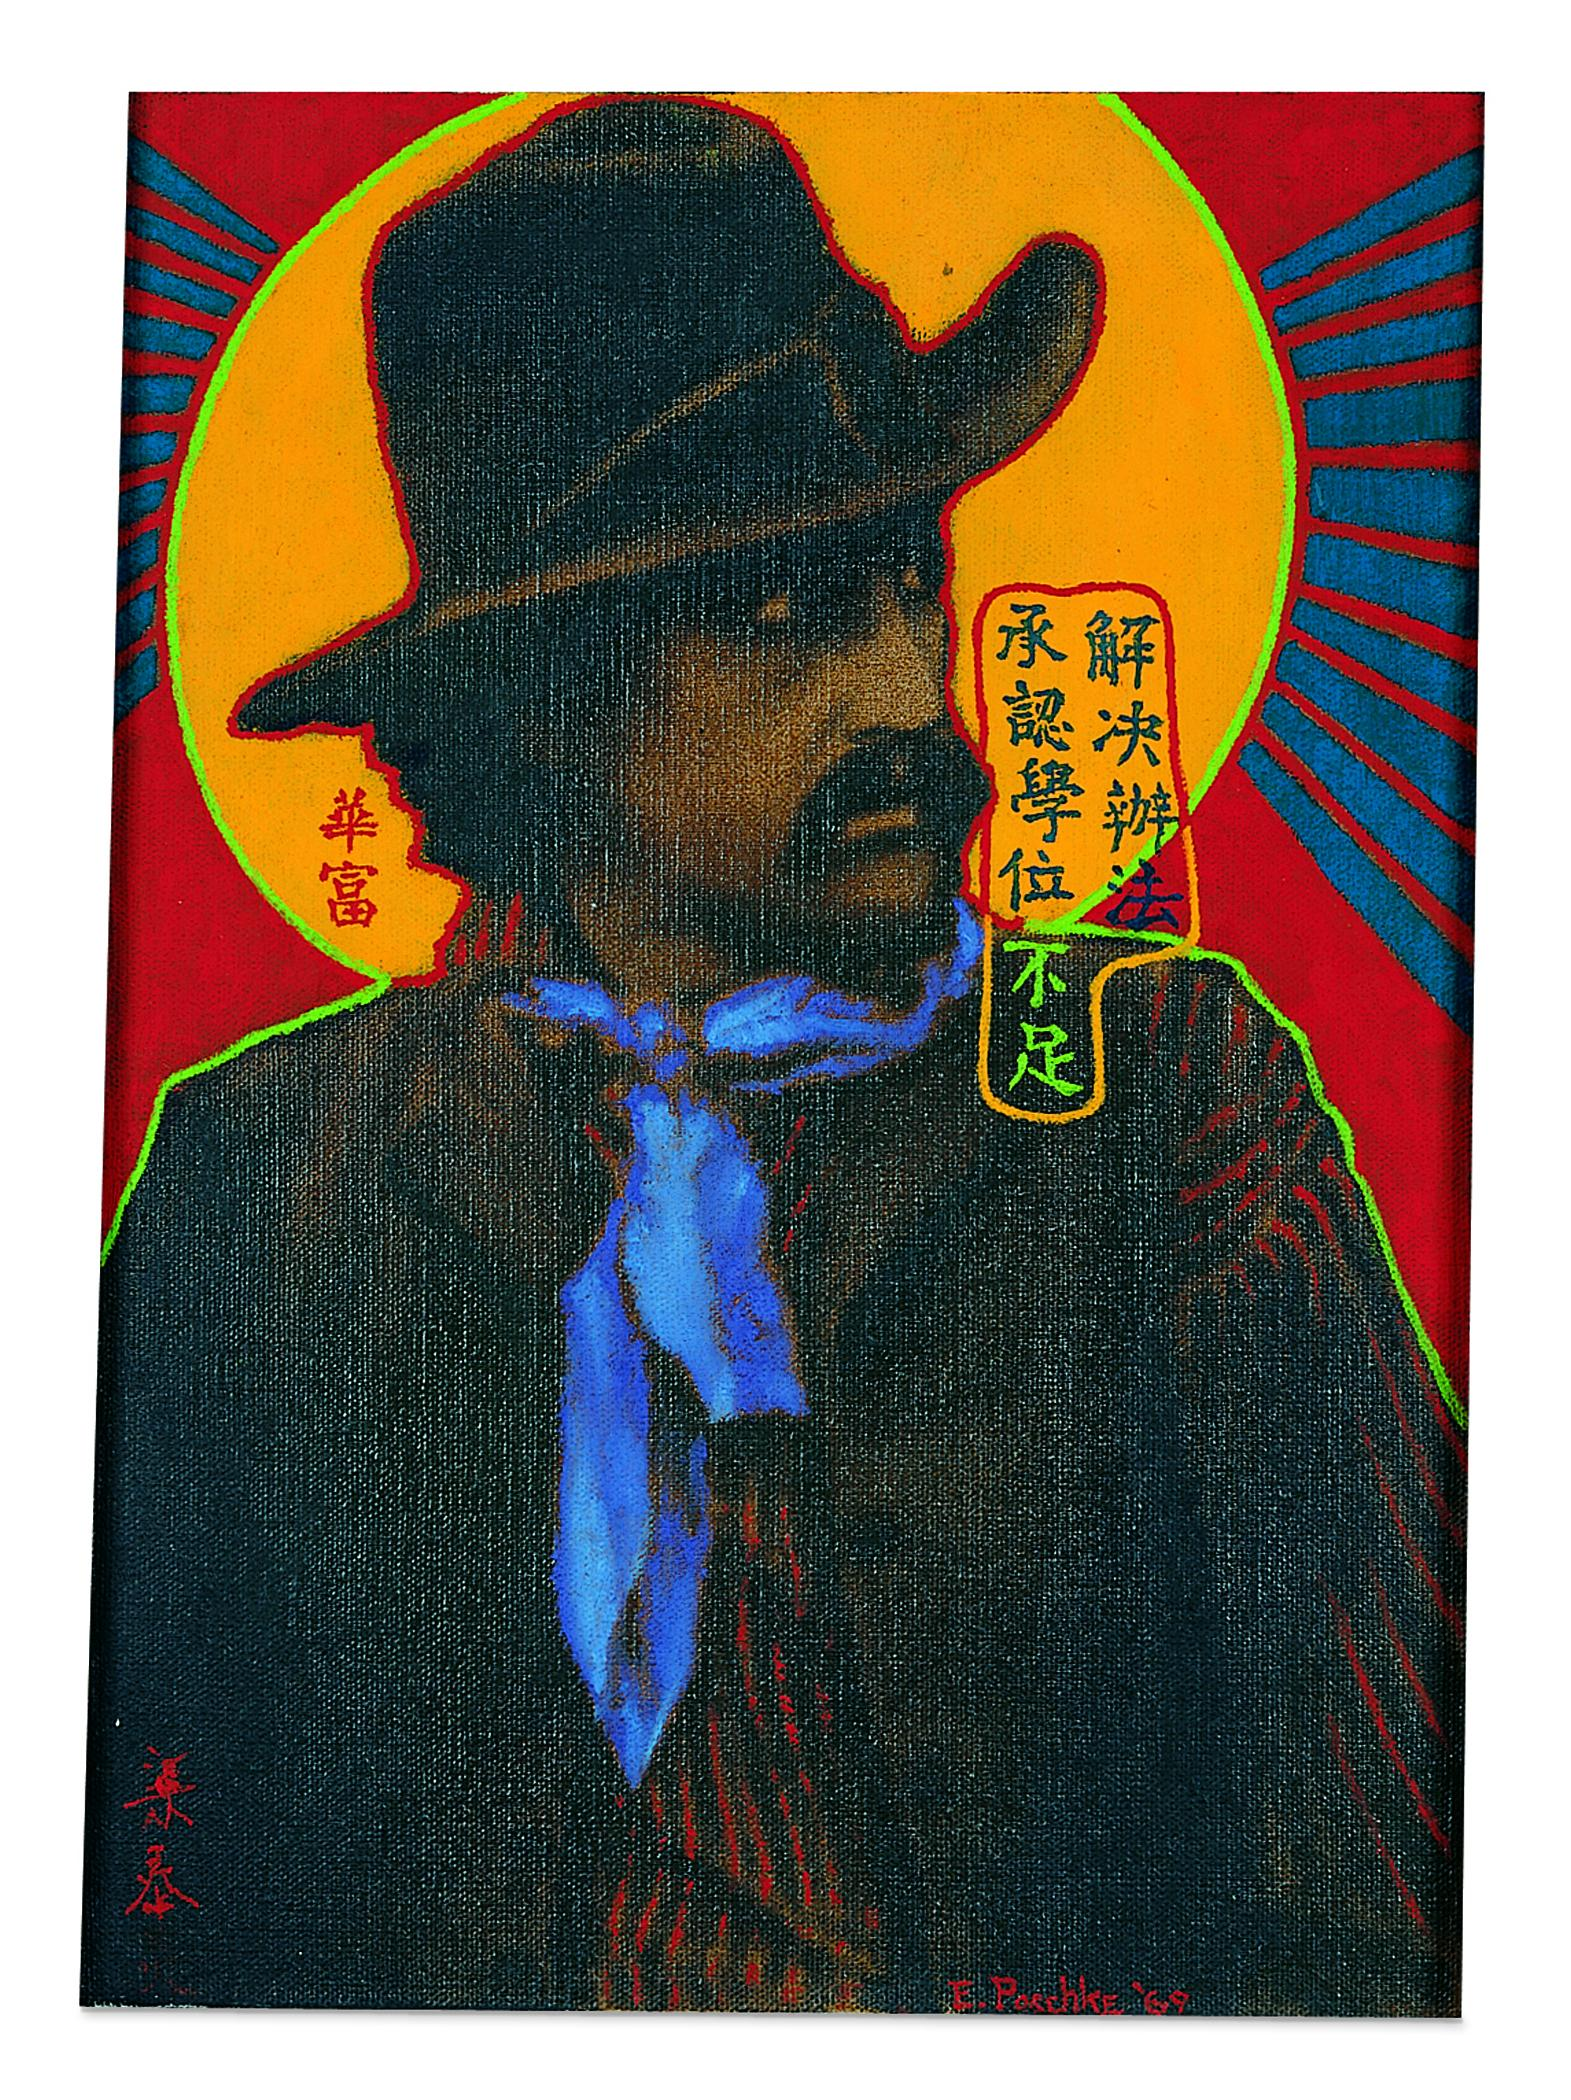 A grainy image of a cowboy stands in front of a yellow sun with solid blue streaks emanating from it. Japanese characters in red, green, and black are written vertically next to the cowboy. The person gazes to the right of the picture and wears a blue scarf and a dark cowboy hat.